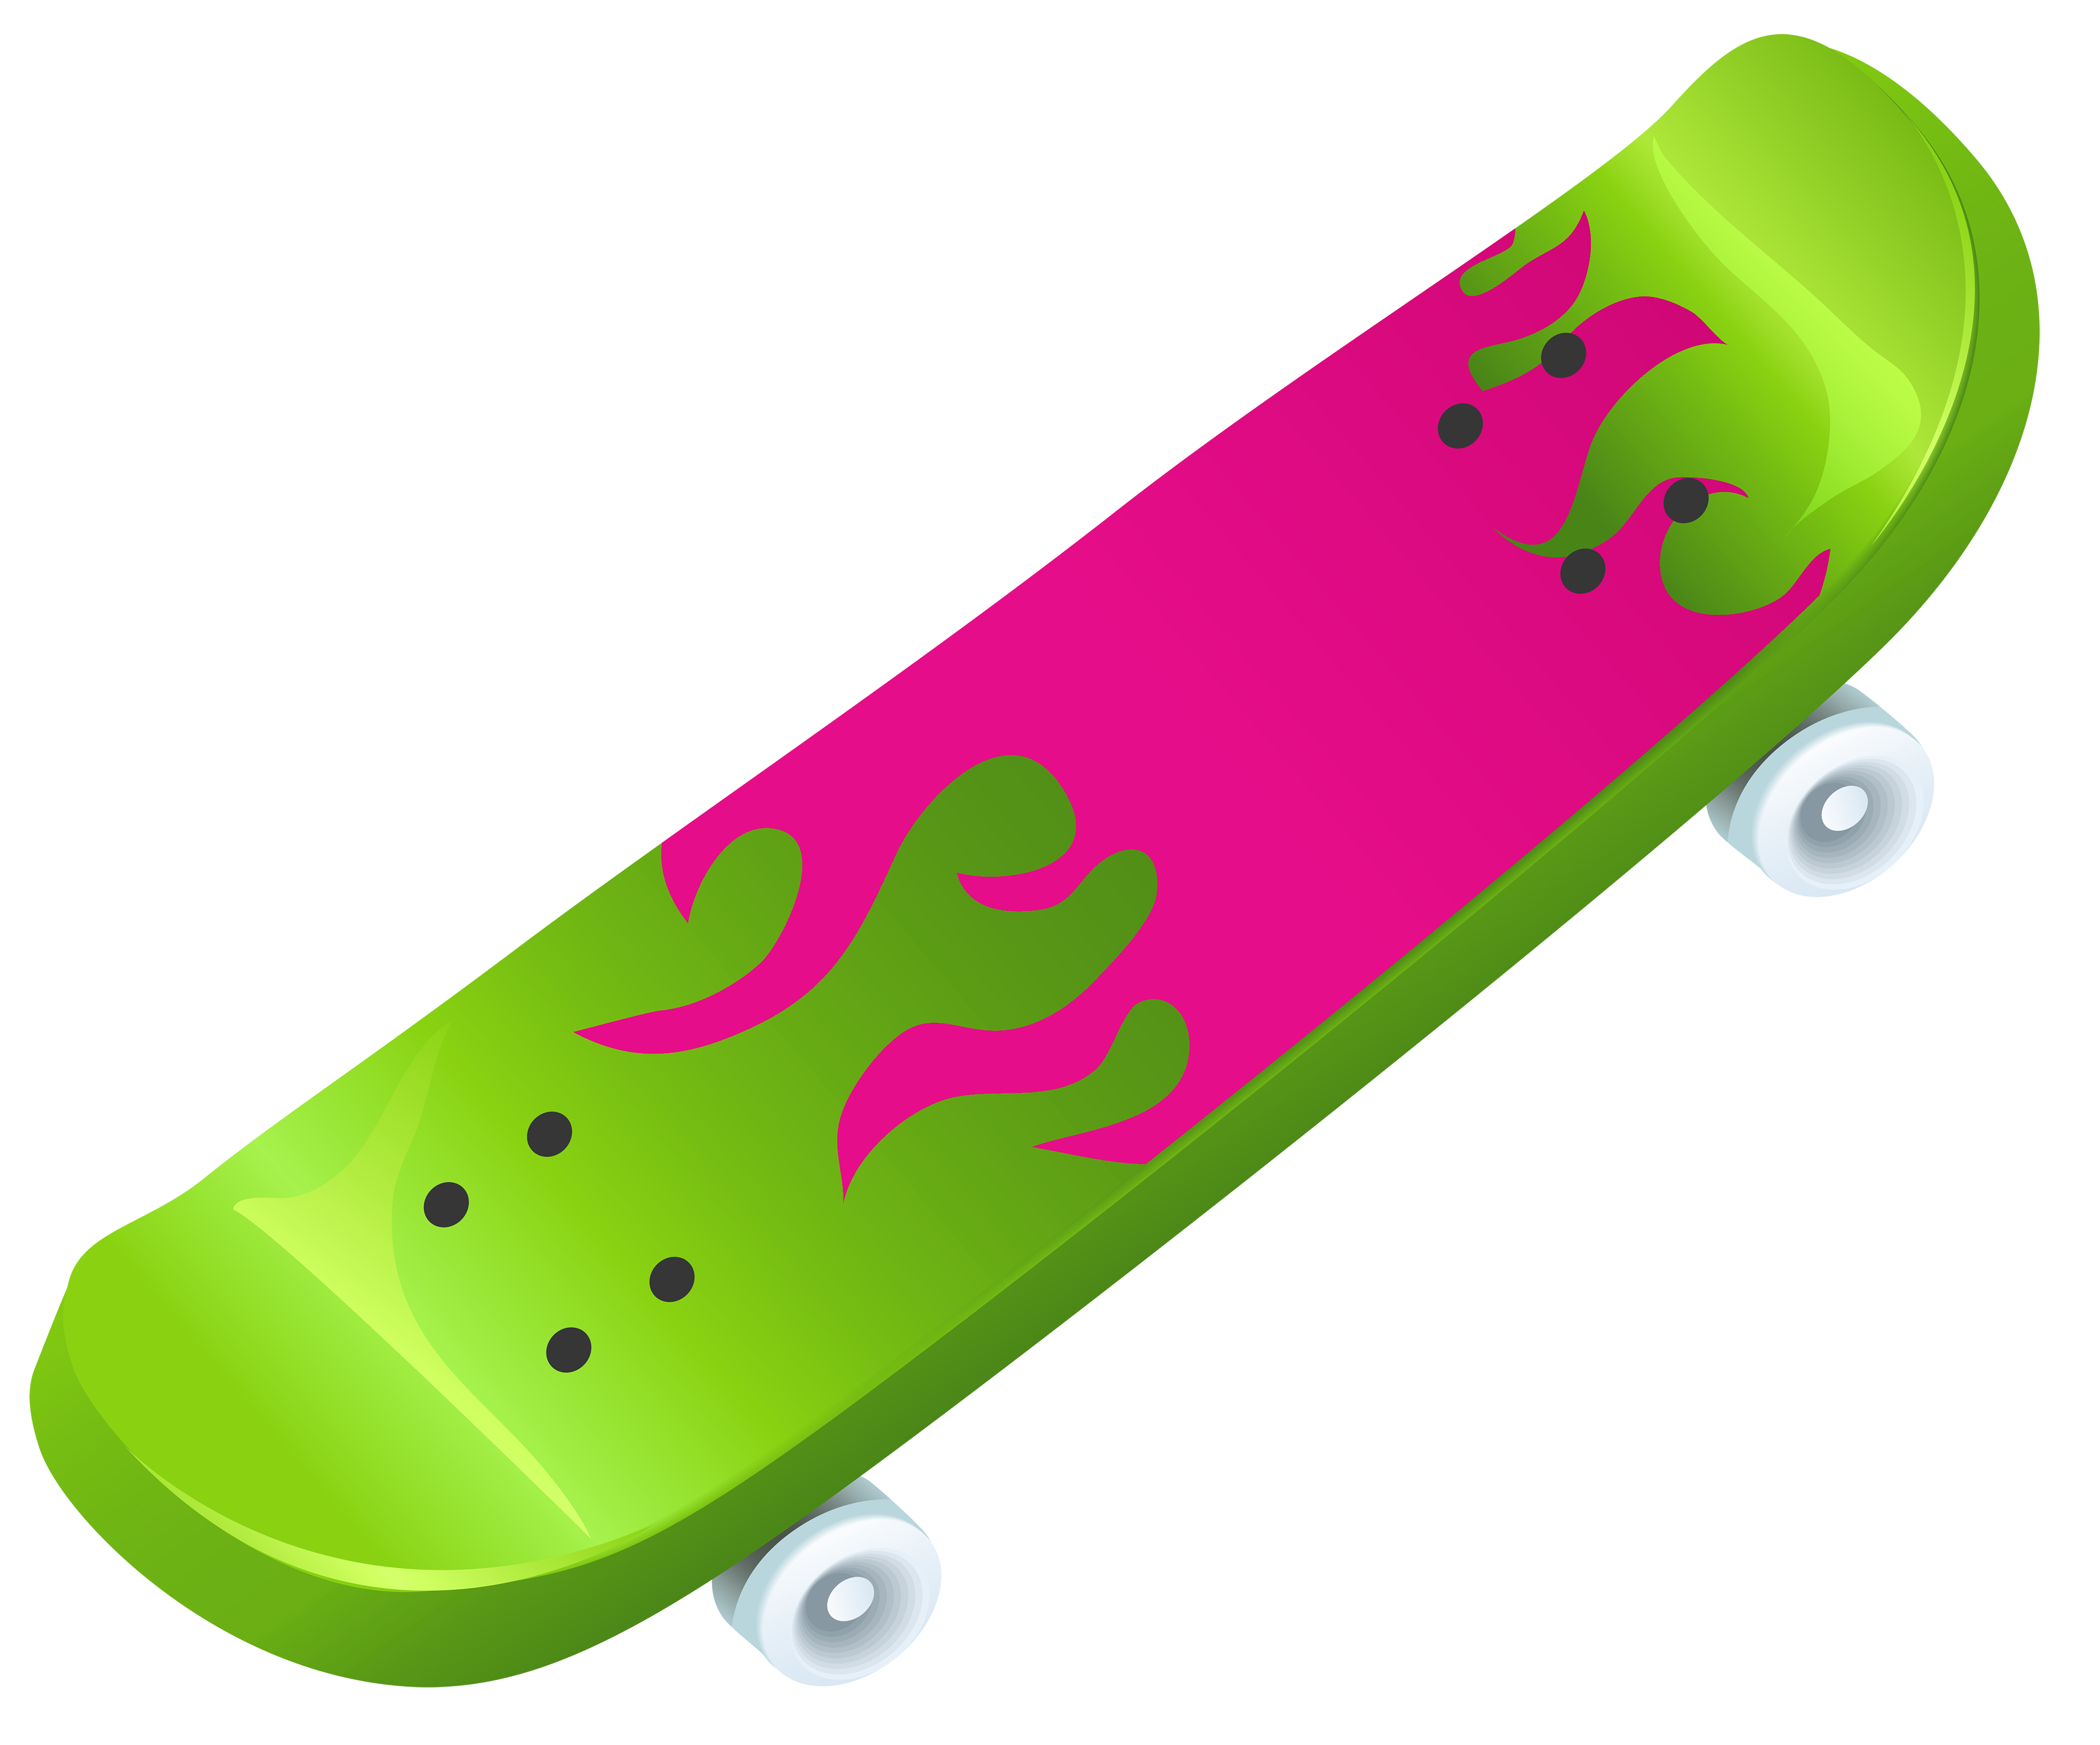 Image of skateboard clipart 8 2 clip art at vector.